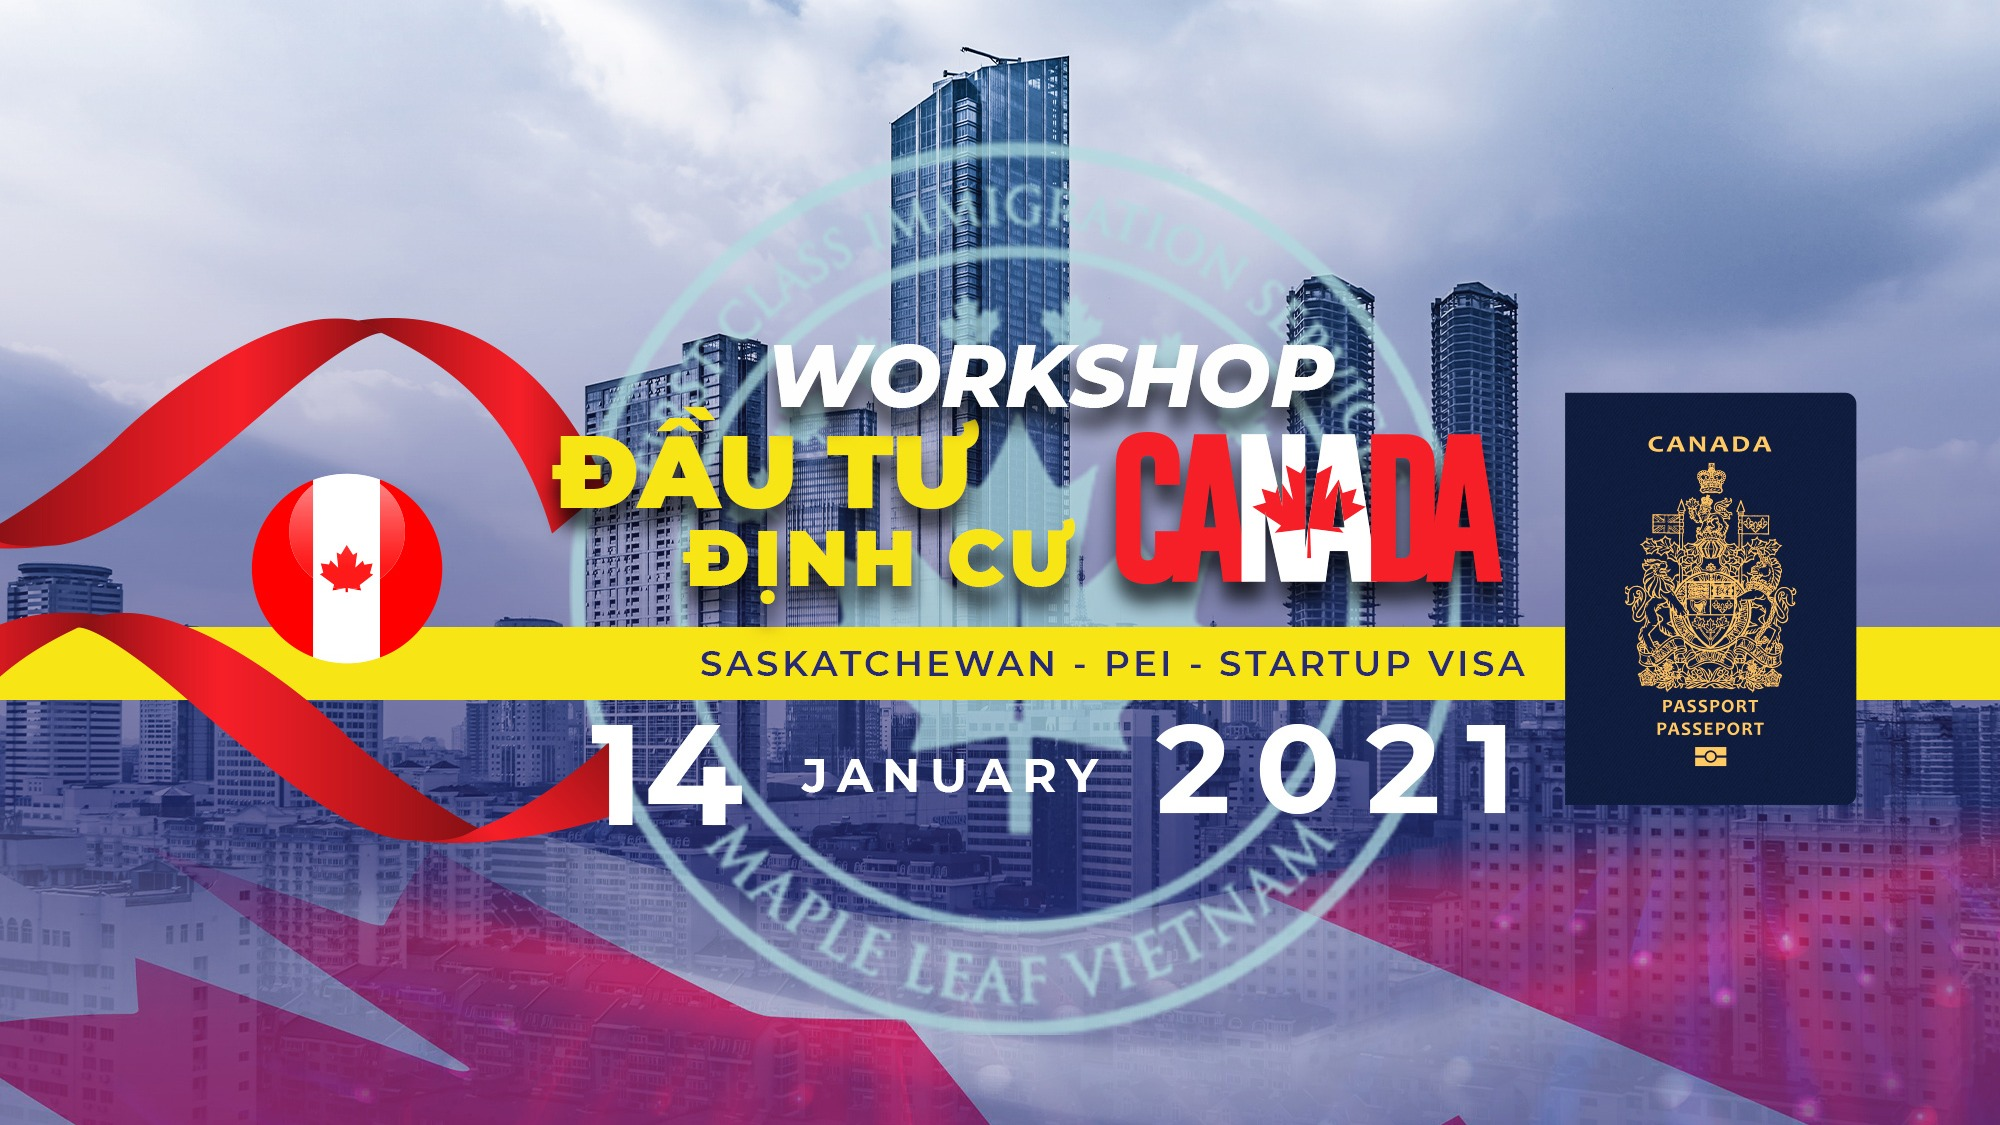 hcm-workshop-lam-the-nao-de-dau-tu-dinh-cu-canada